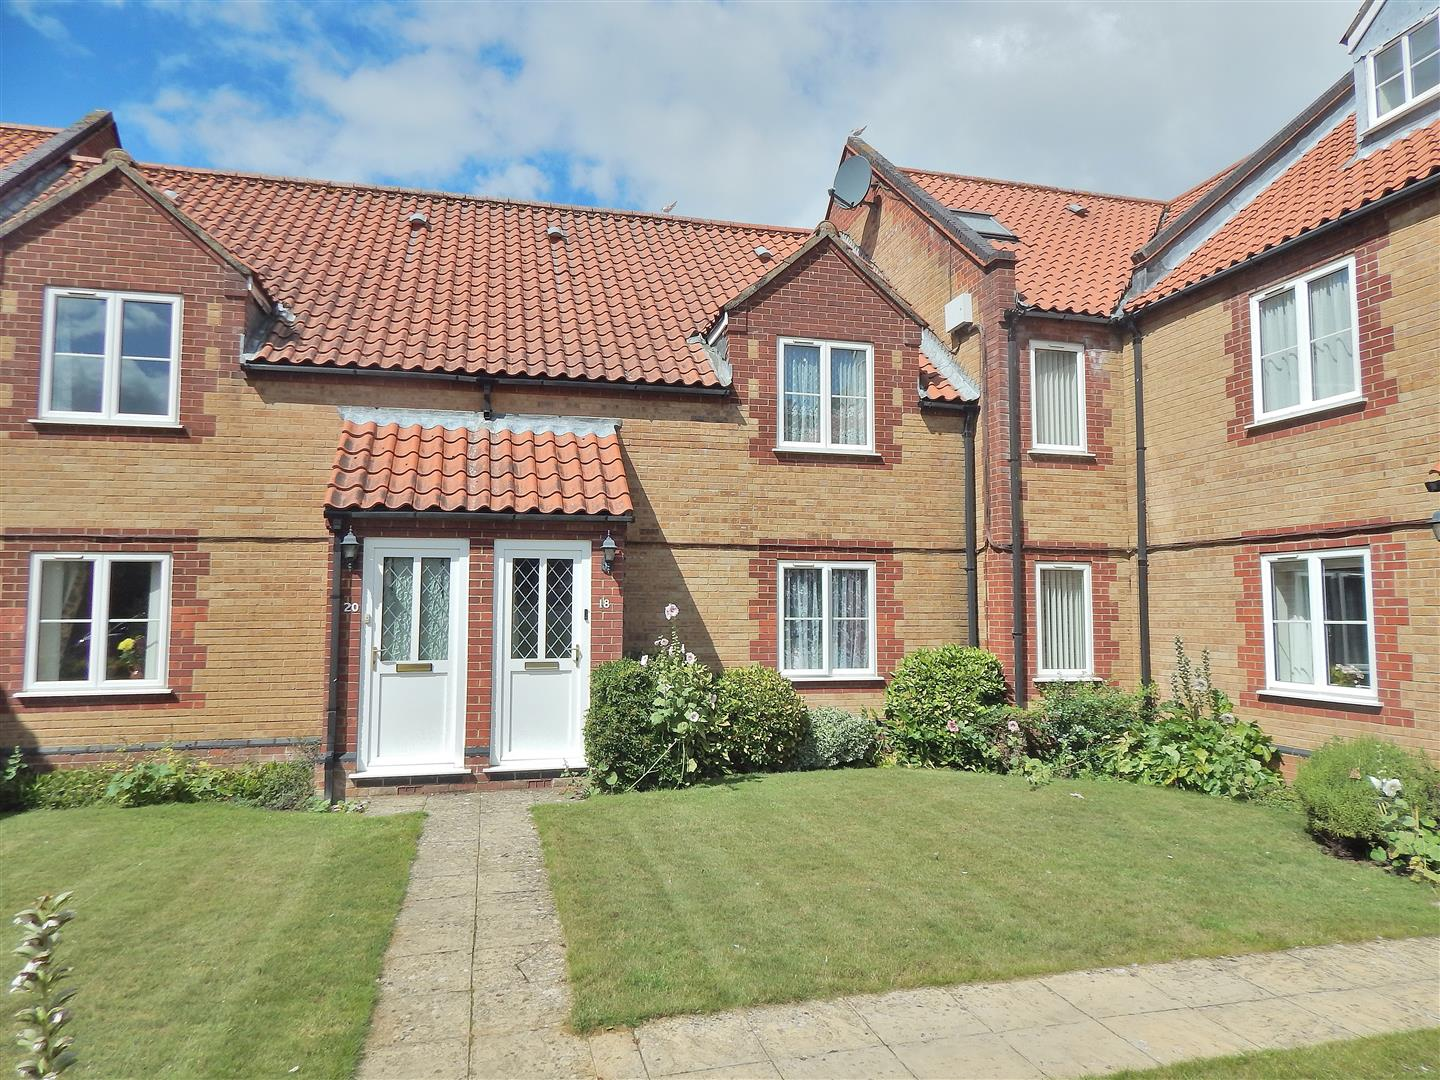 1 bed flat for sale in King's Lynn, PE31 6RG  - Property Image 1